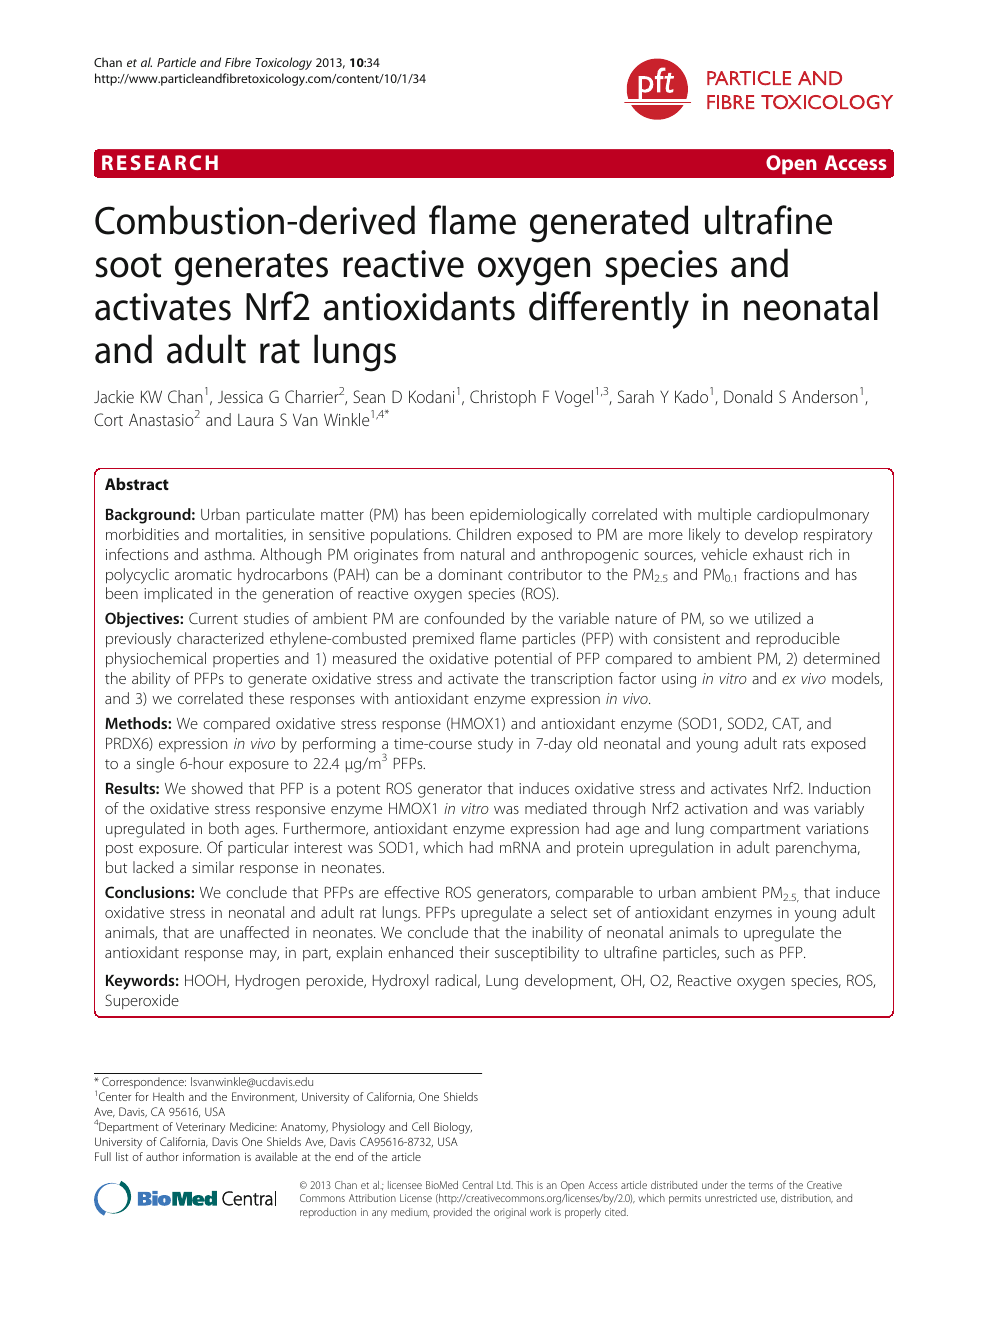 Combustion-derived flame generated ultrafine soot generates